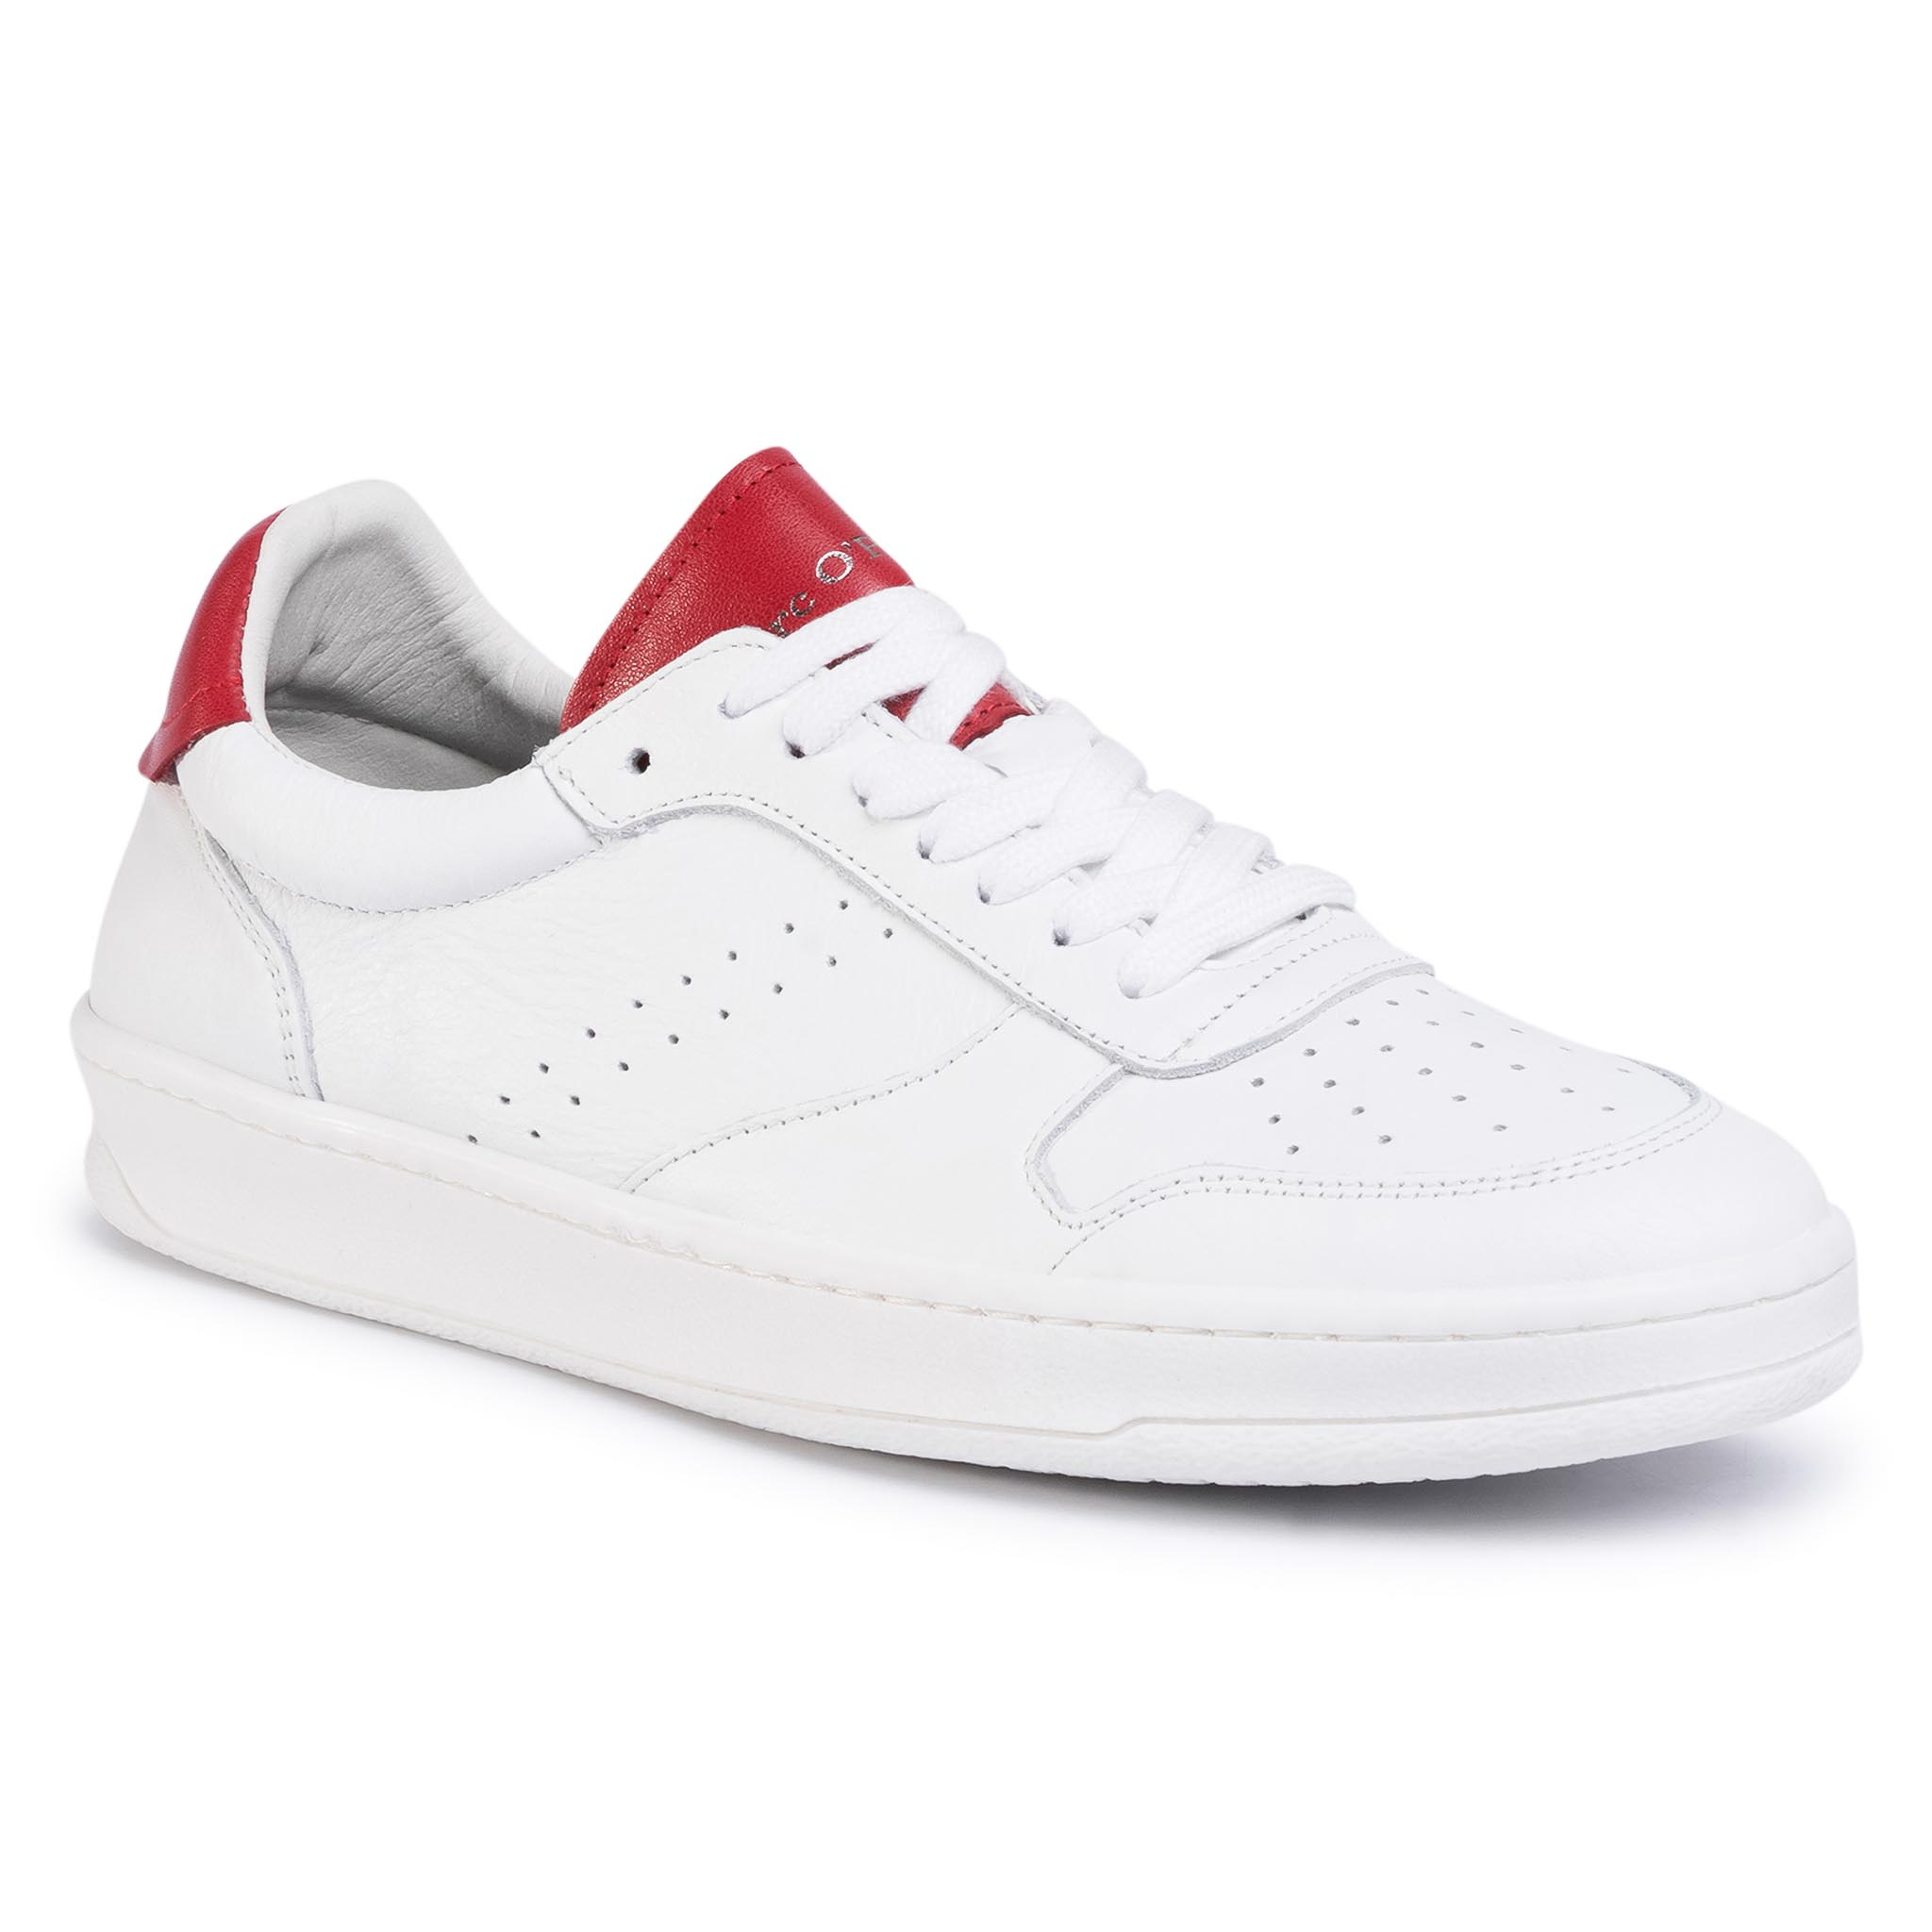 Sneakers MARC O'POLO - 002 25733501 100 White/Red 105